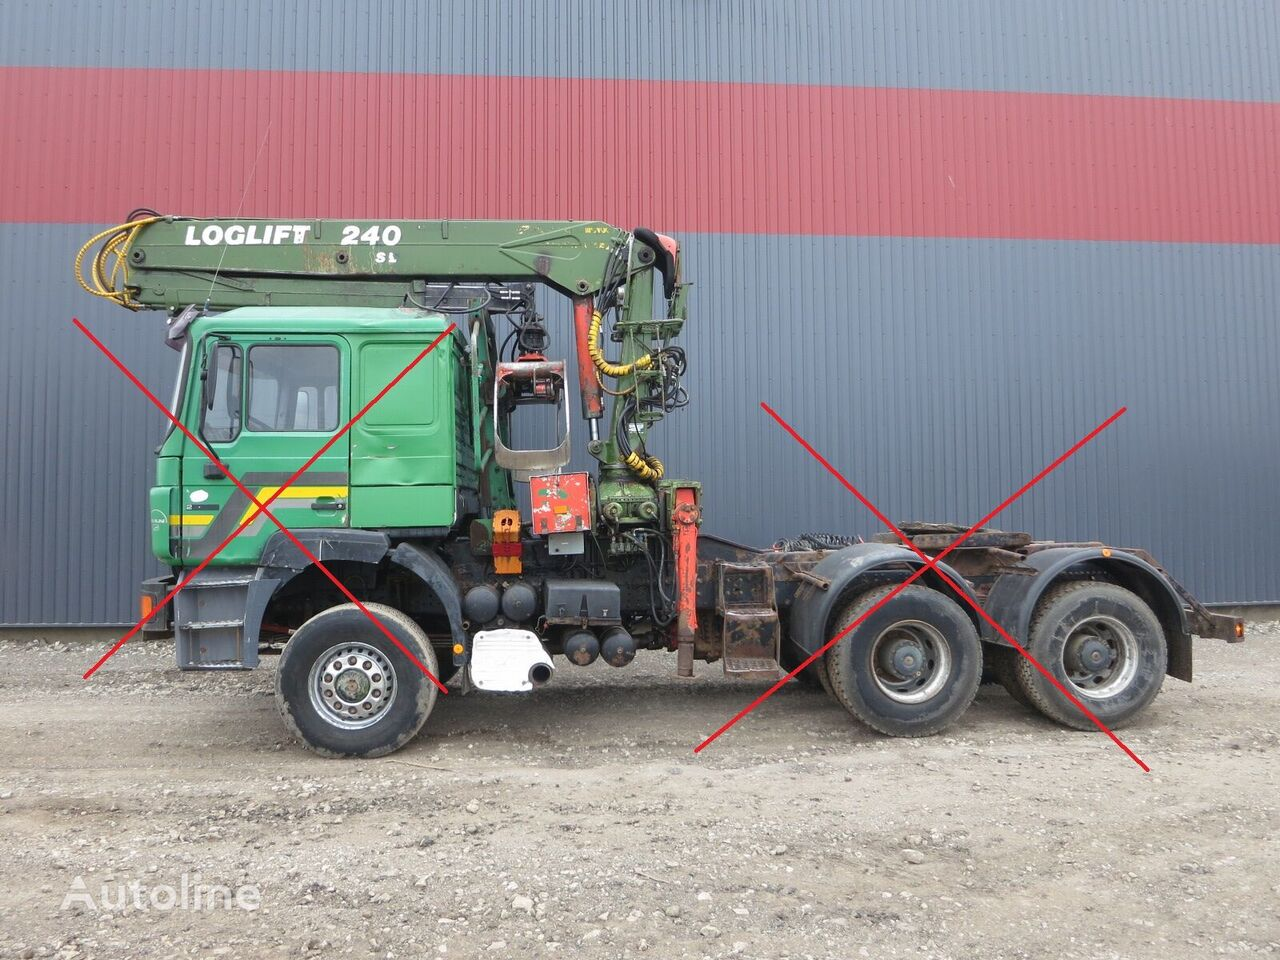 LOGLIFT 240 SL loader crane